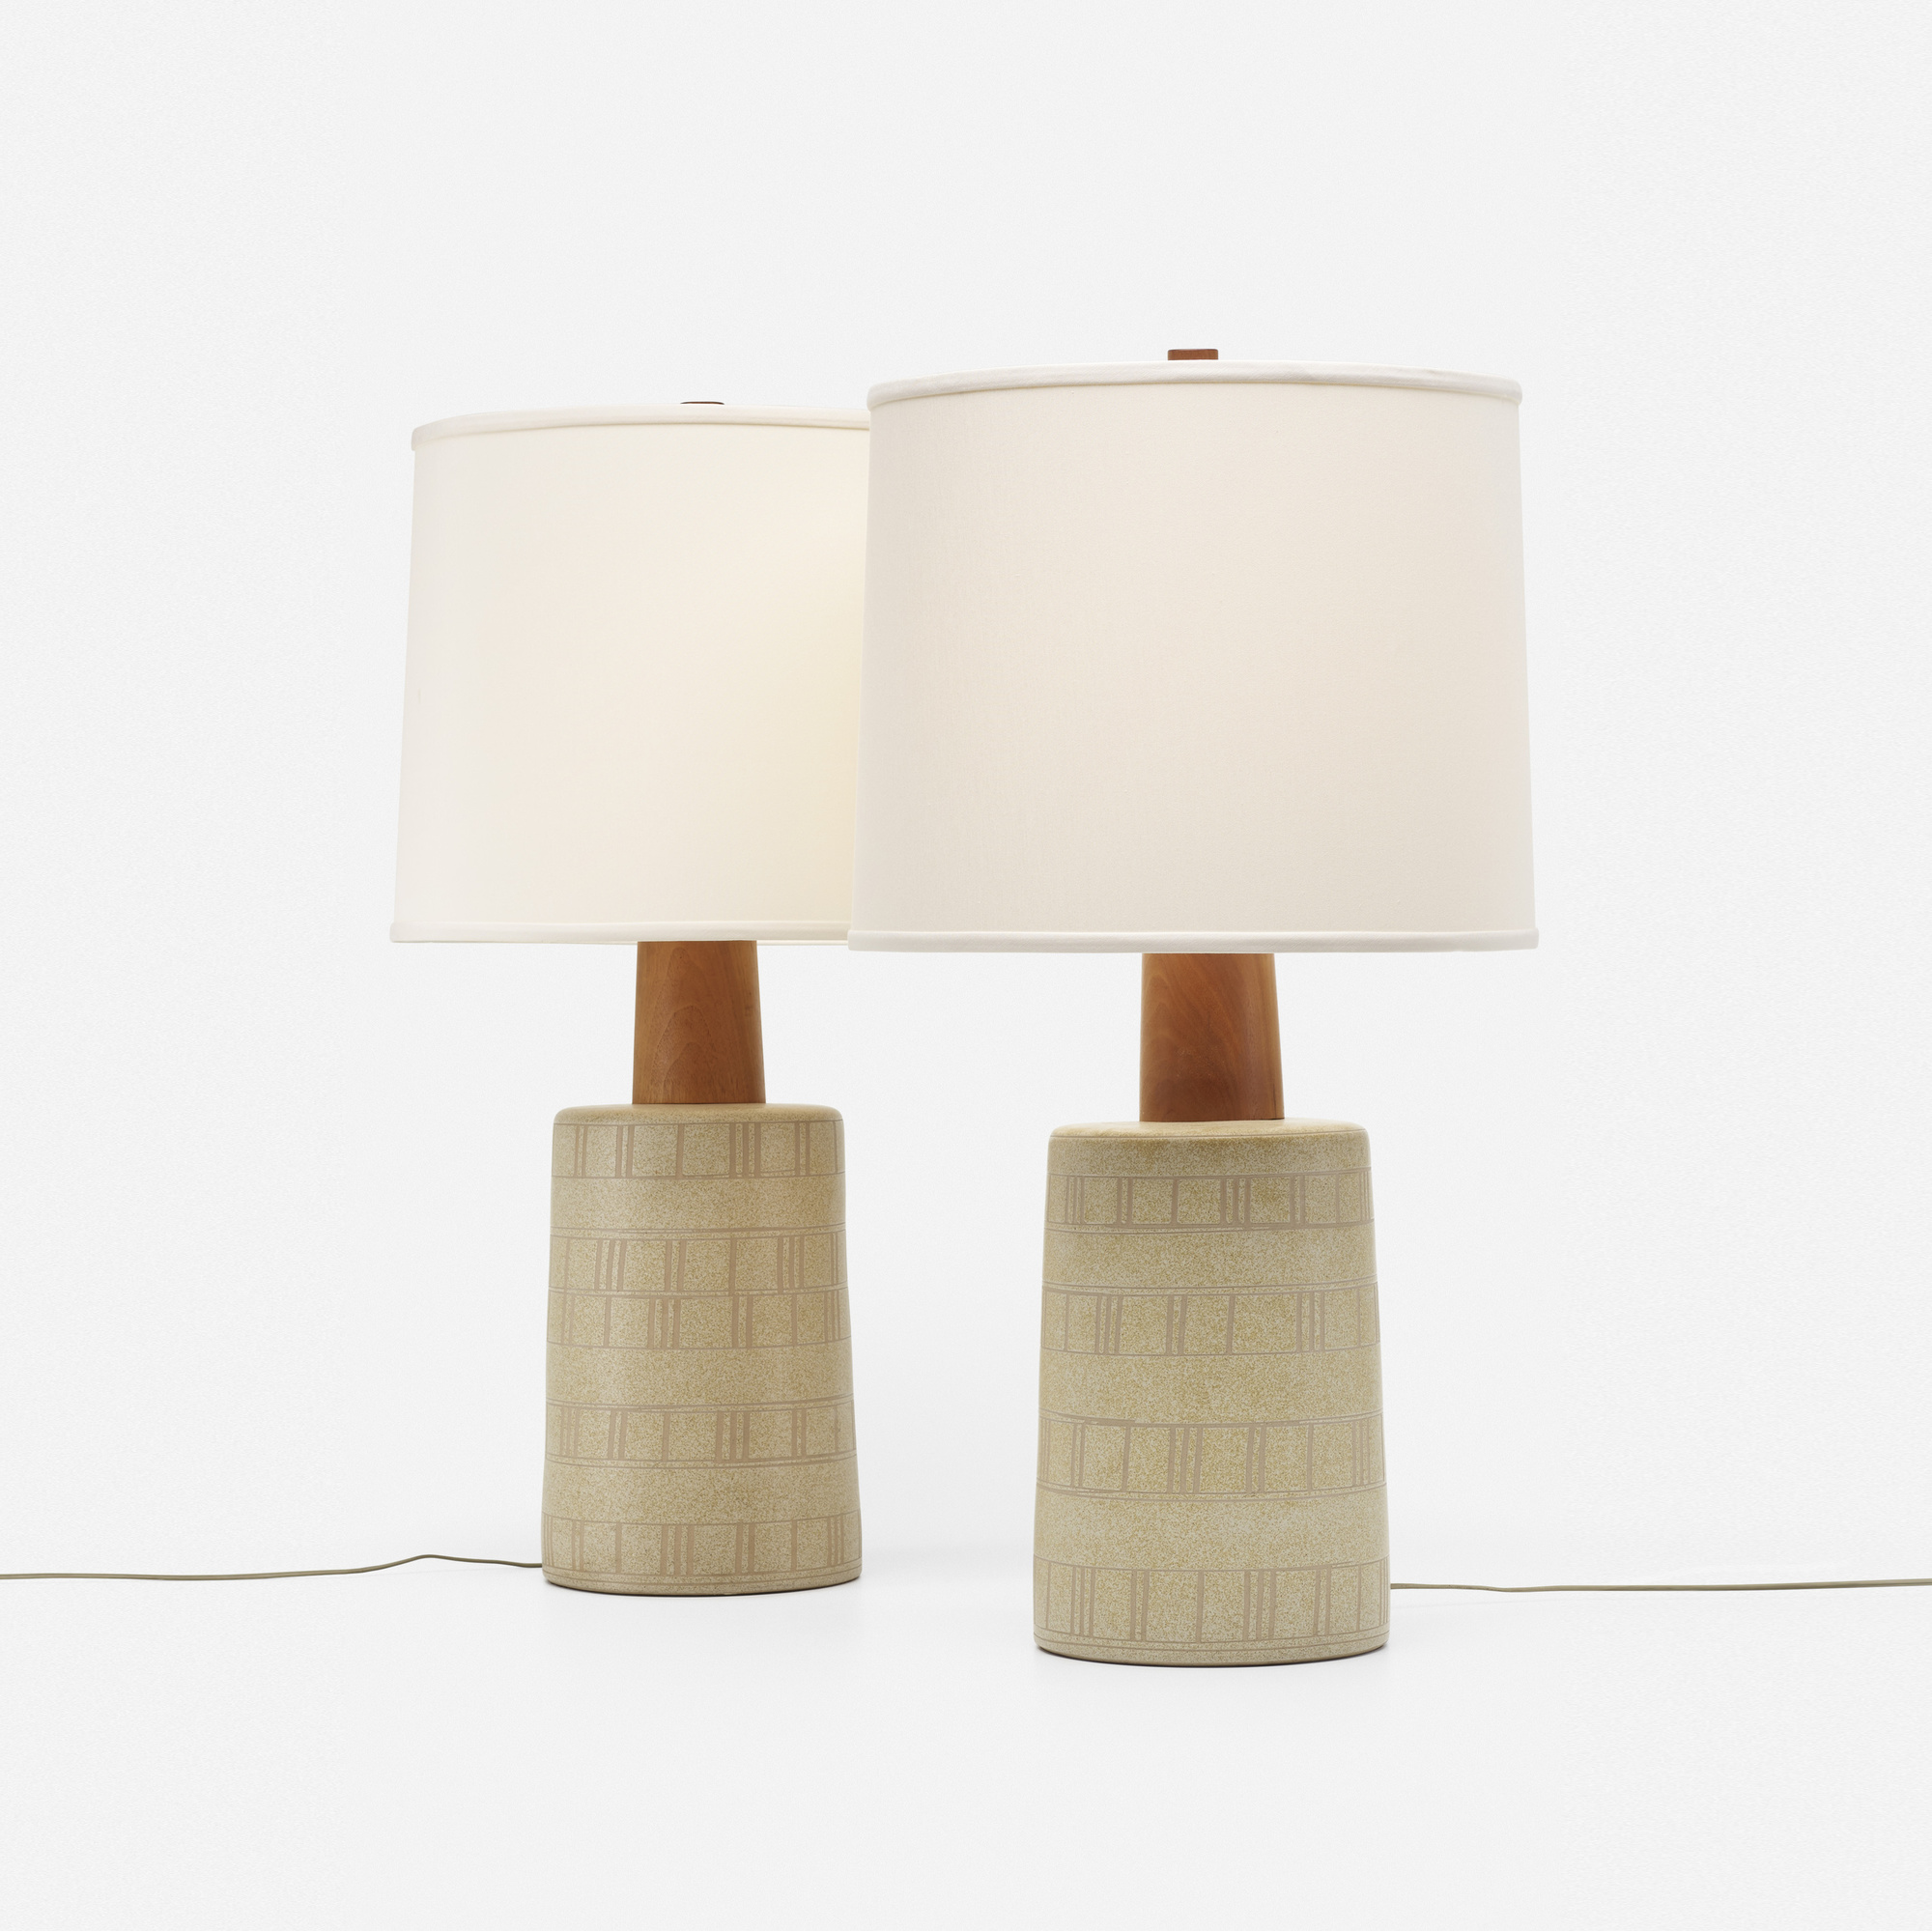 195: Gordon and Jane Martz / table lamps, pair (1 of 2)